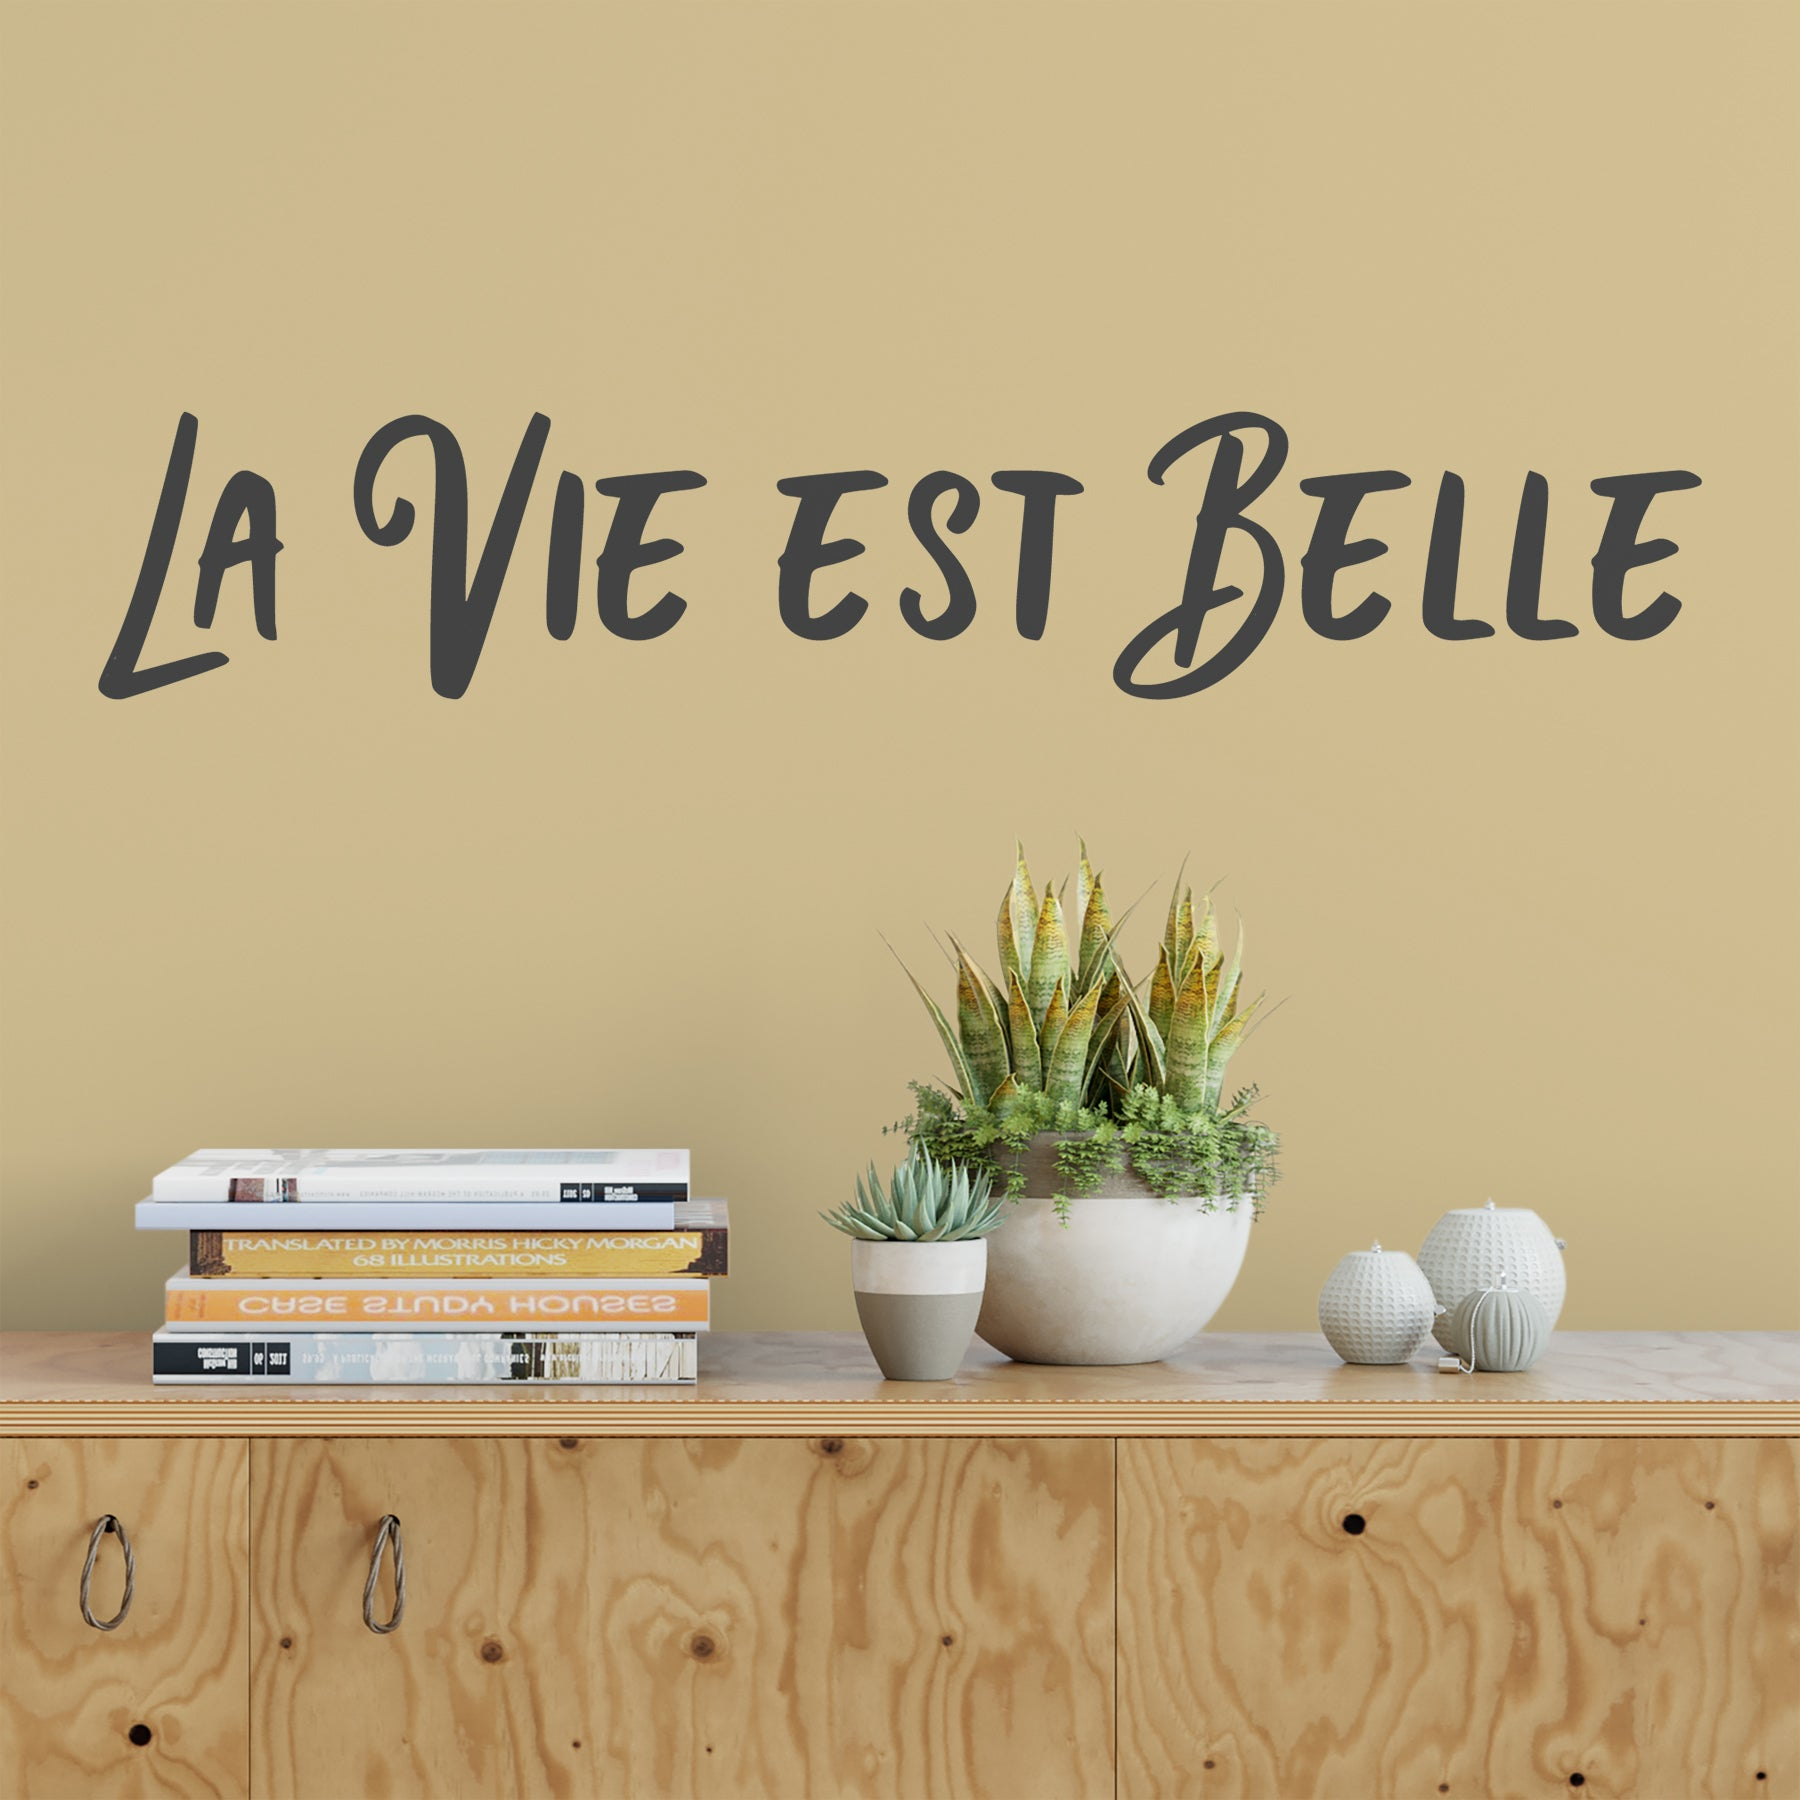 La Vie Est Belle Wall Quote Decal – Dee-cal Frenzy Wall Decor